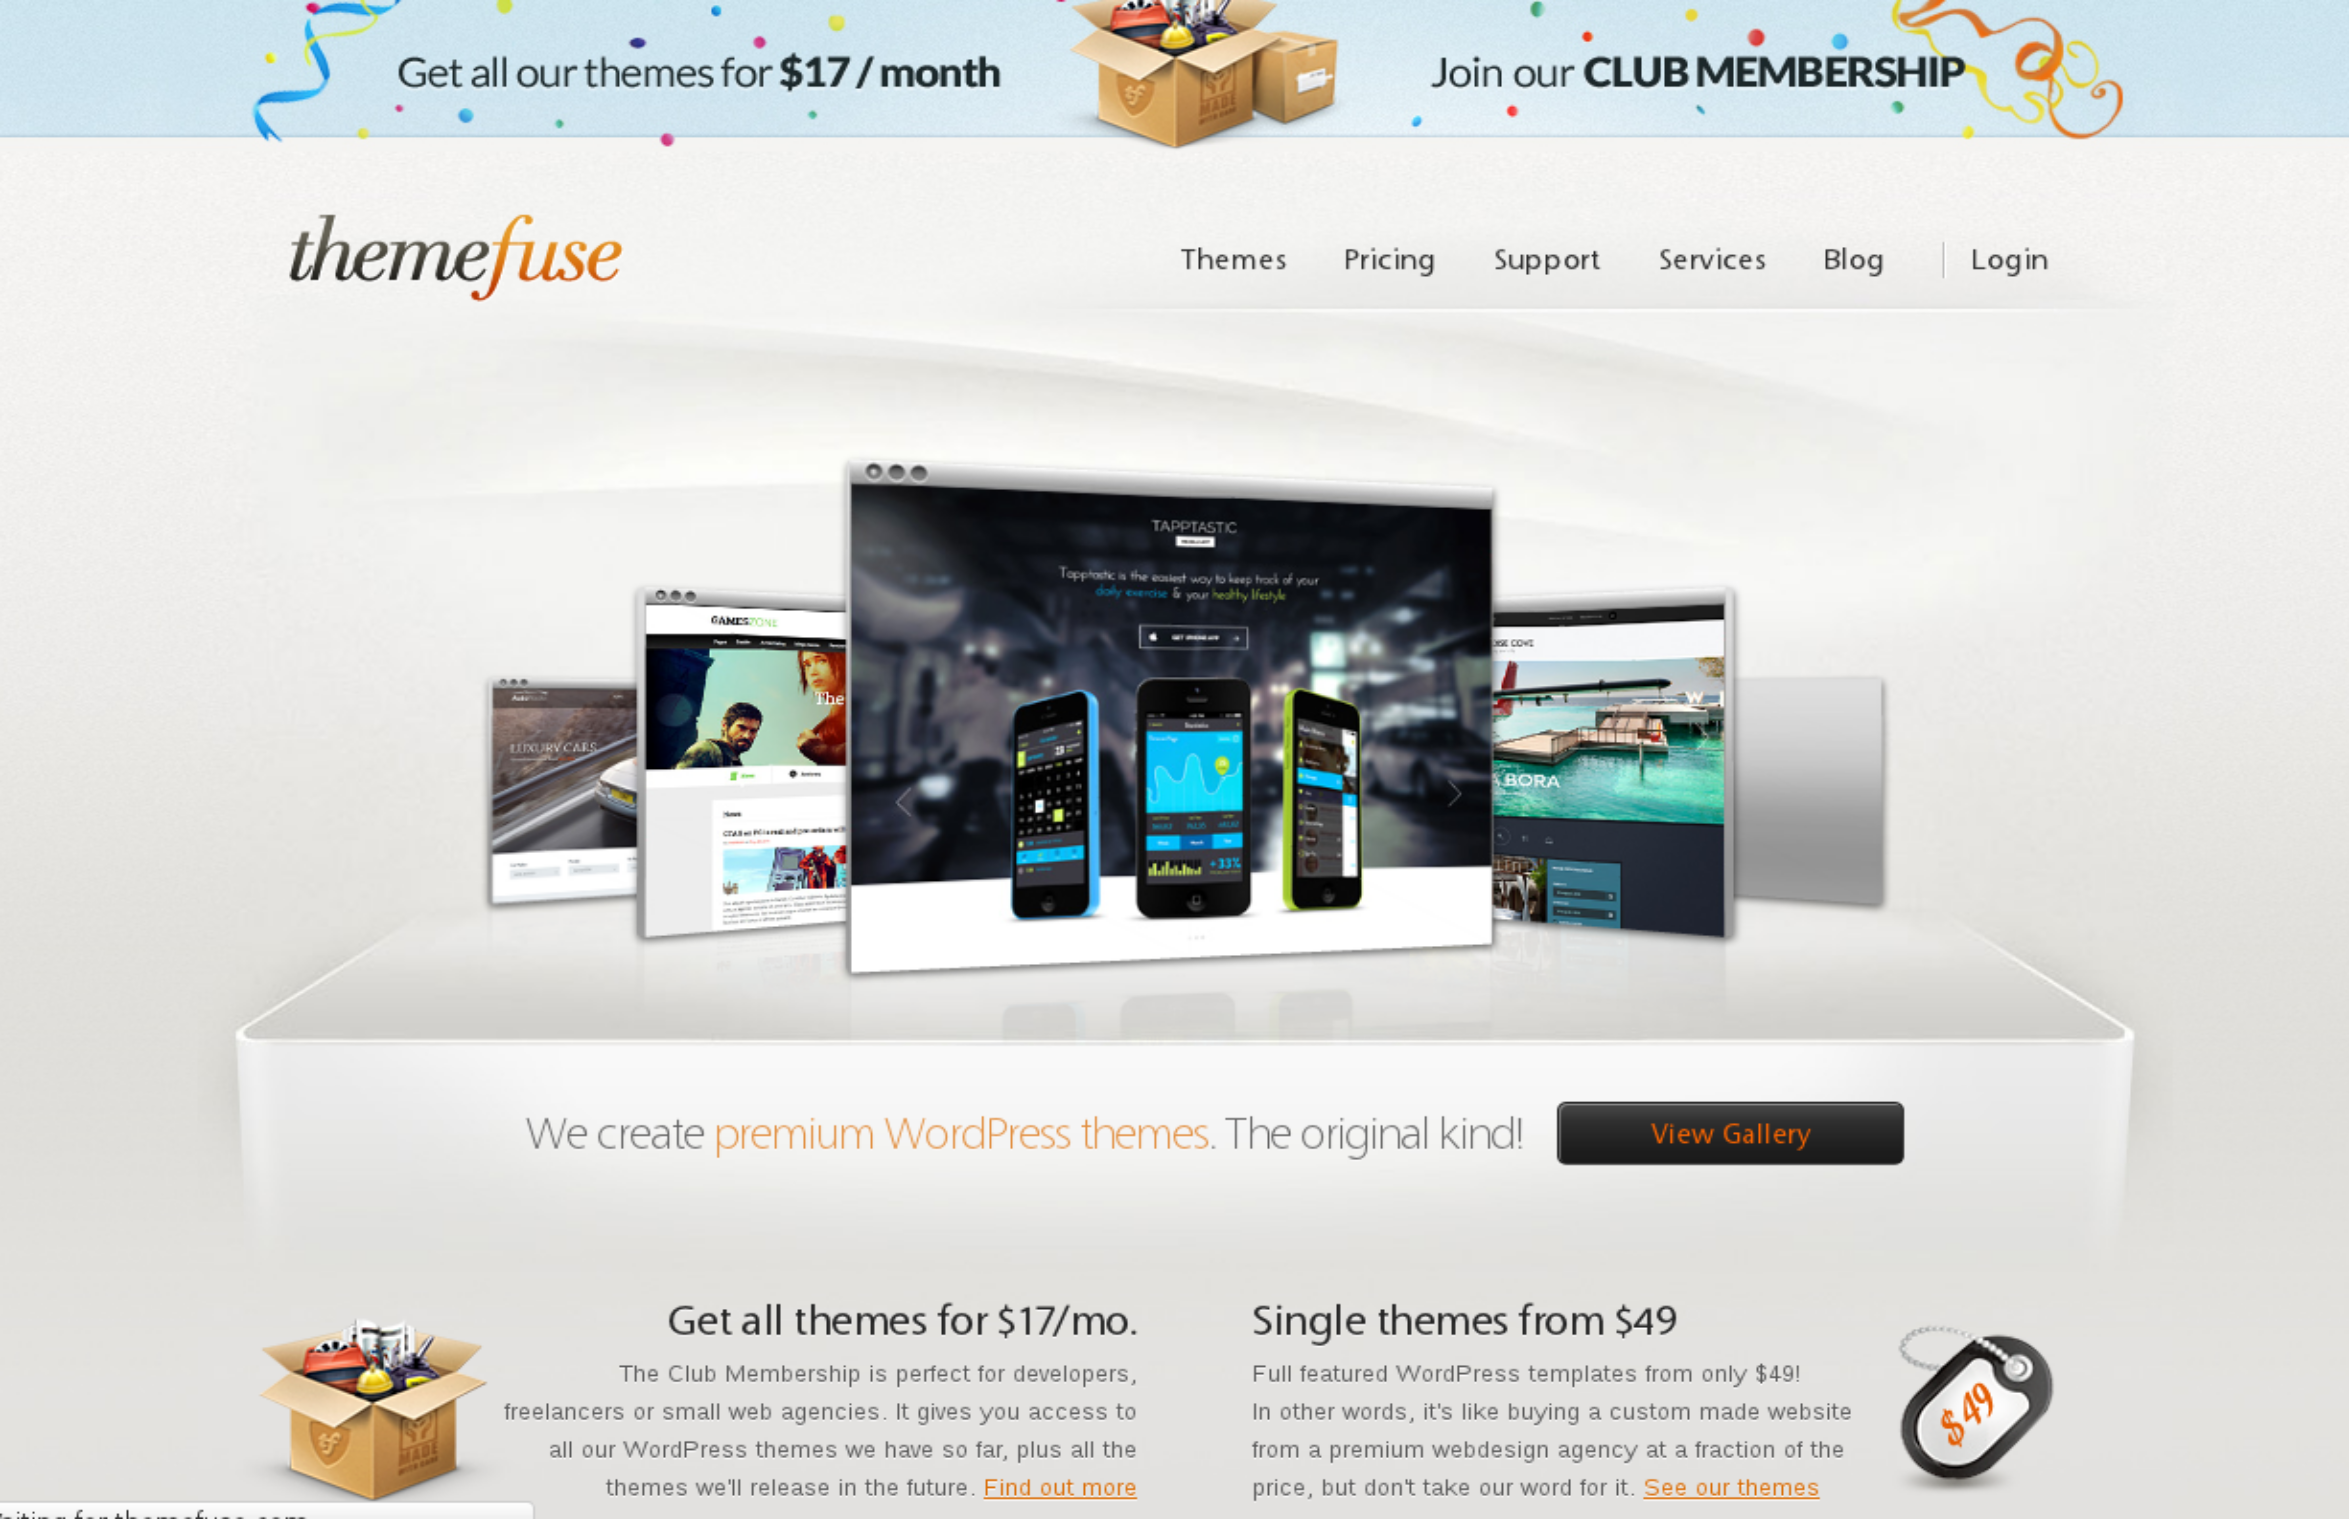 Themefuse WordPress Theme Club - only Best wordpress themes and Support